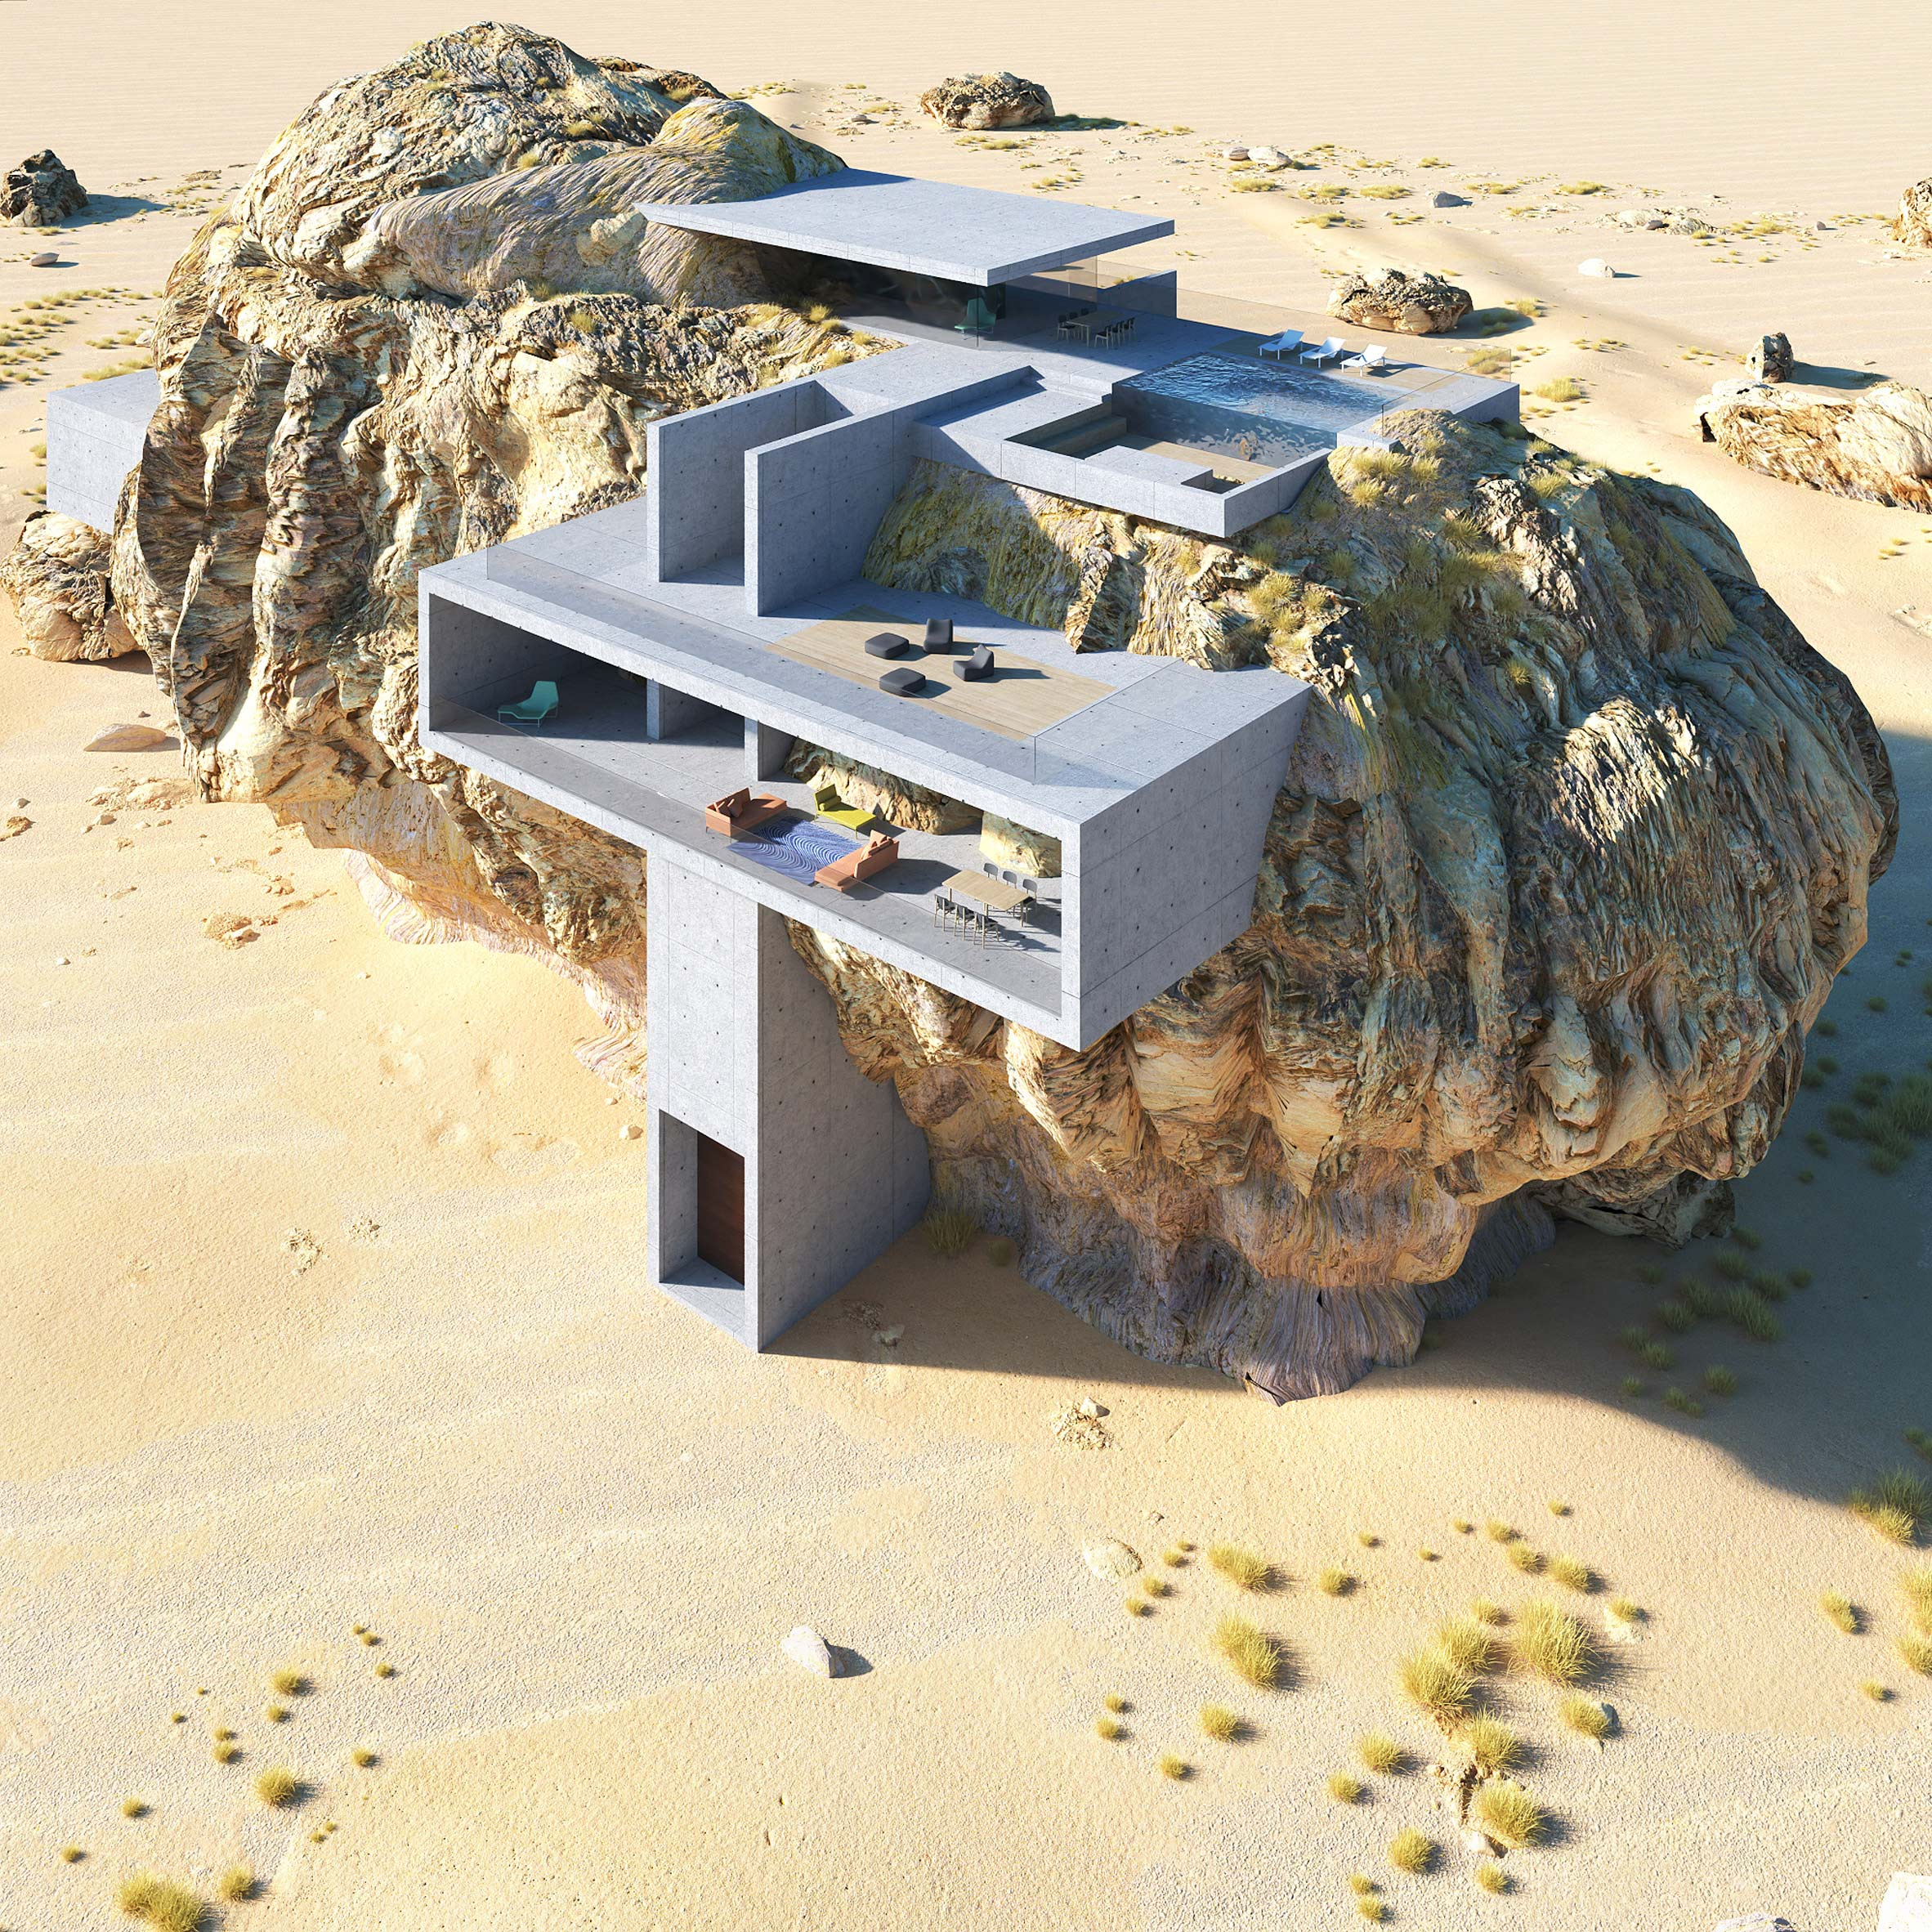 House Inside a Rock by Amey Kandalgaonkar